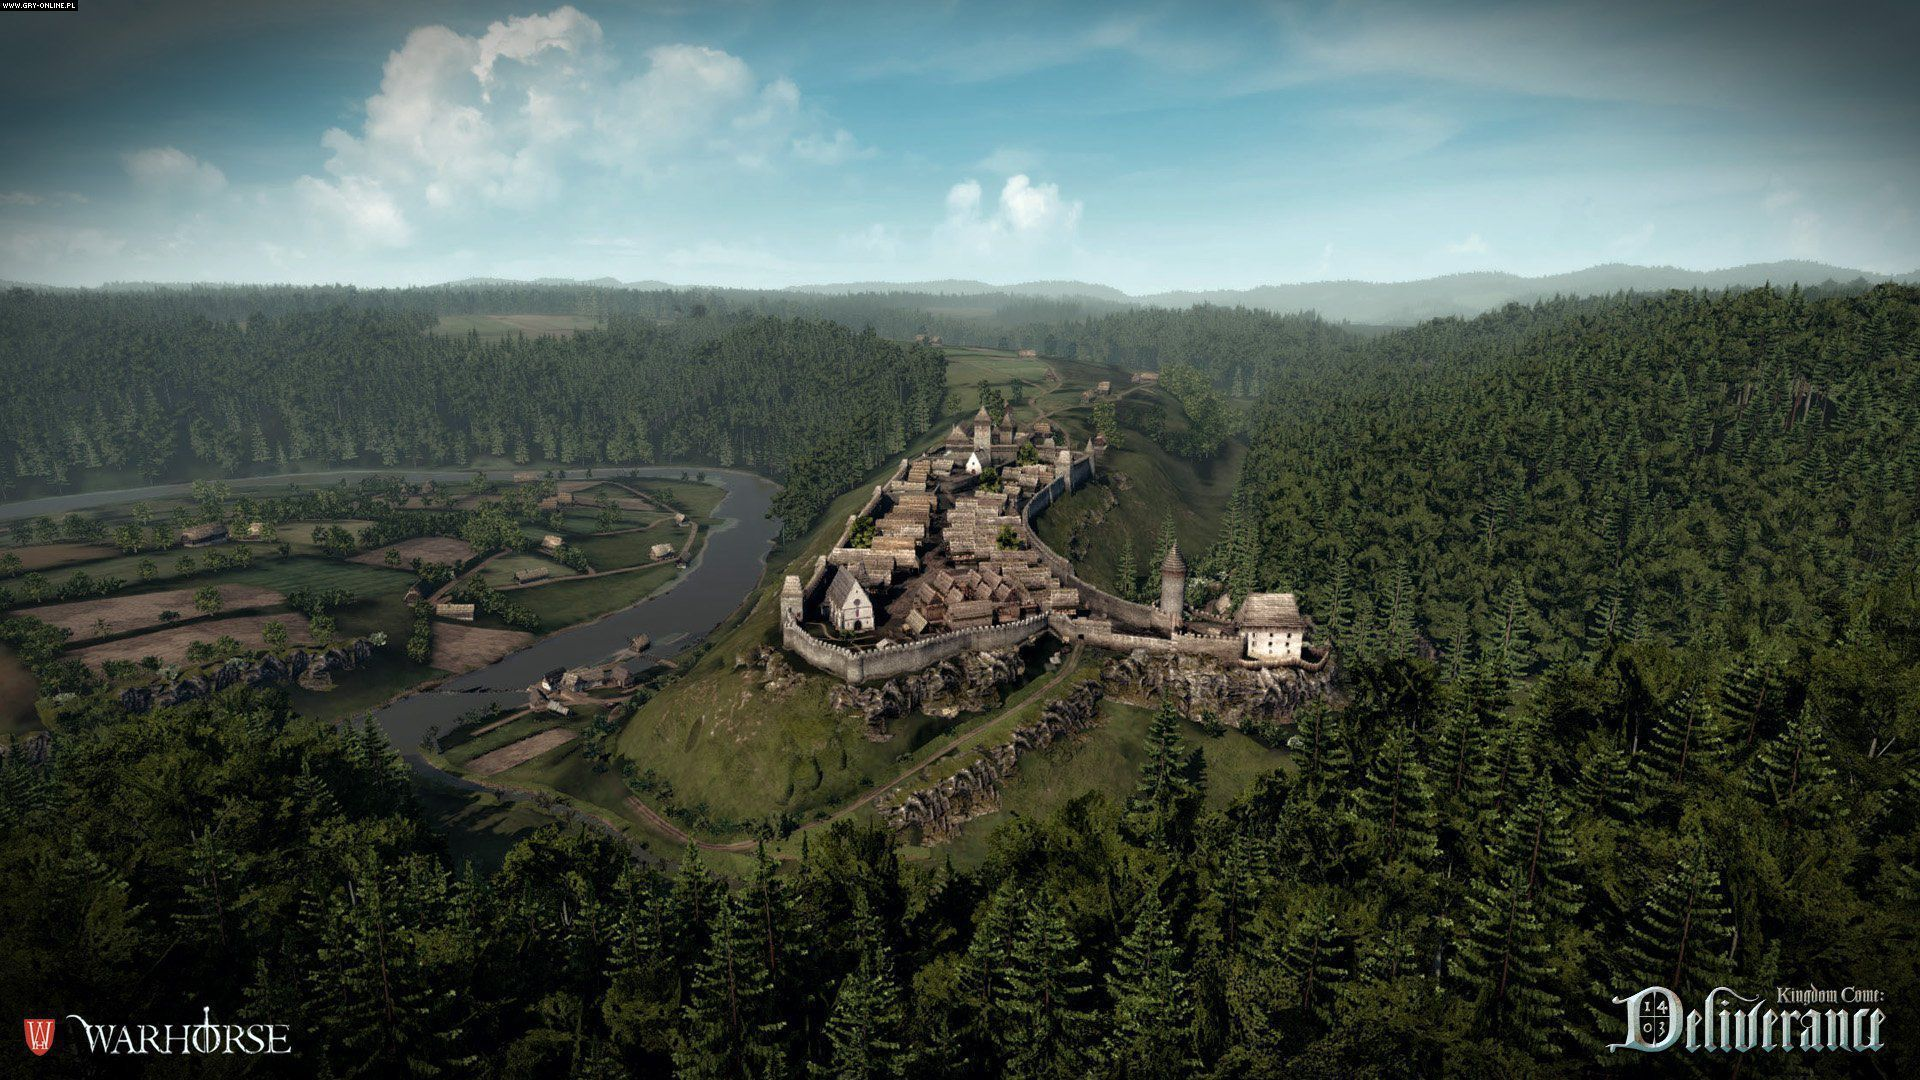 Kingdom Come Deliverance Gallery